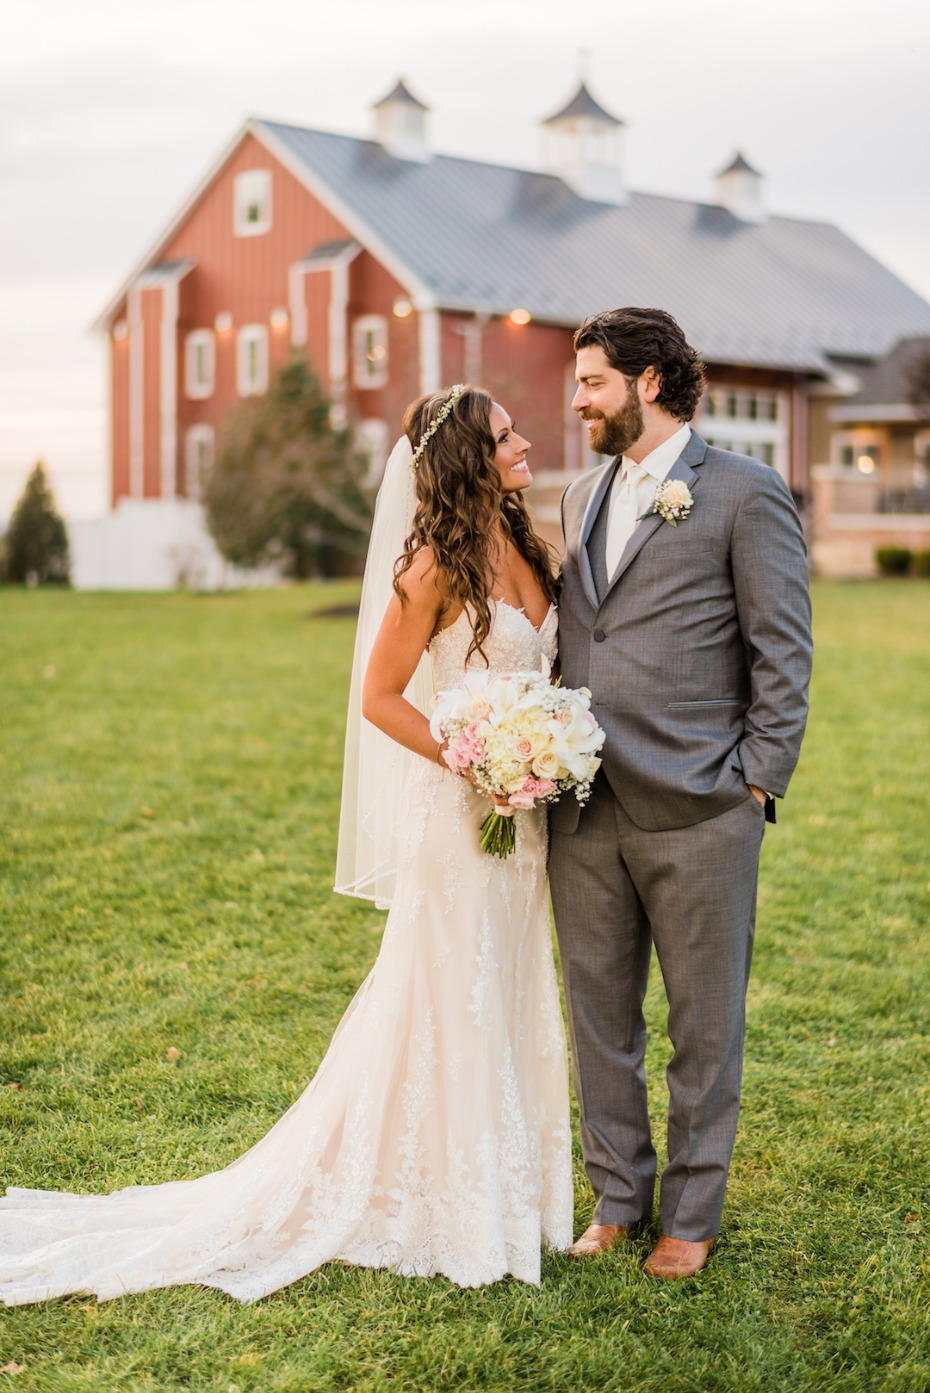 Rustic barn wedding at Wyndridge Farm